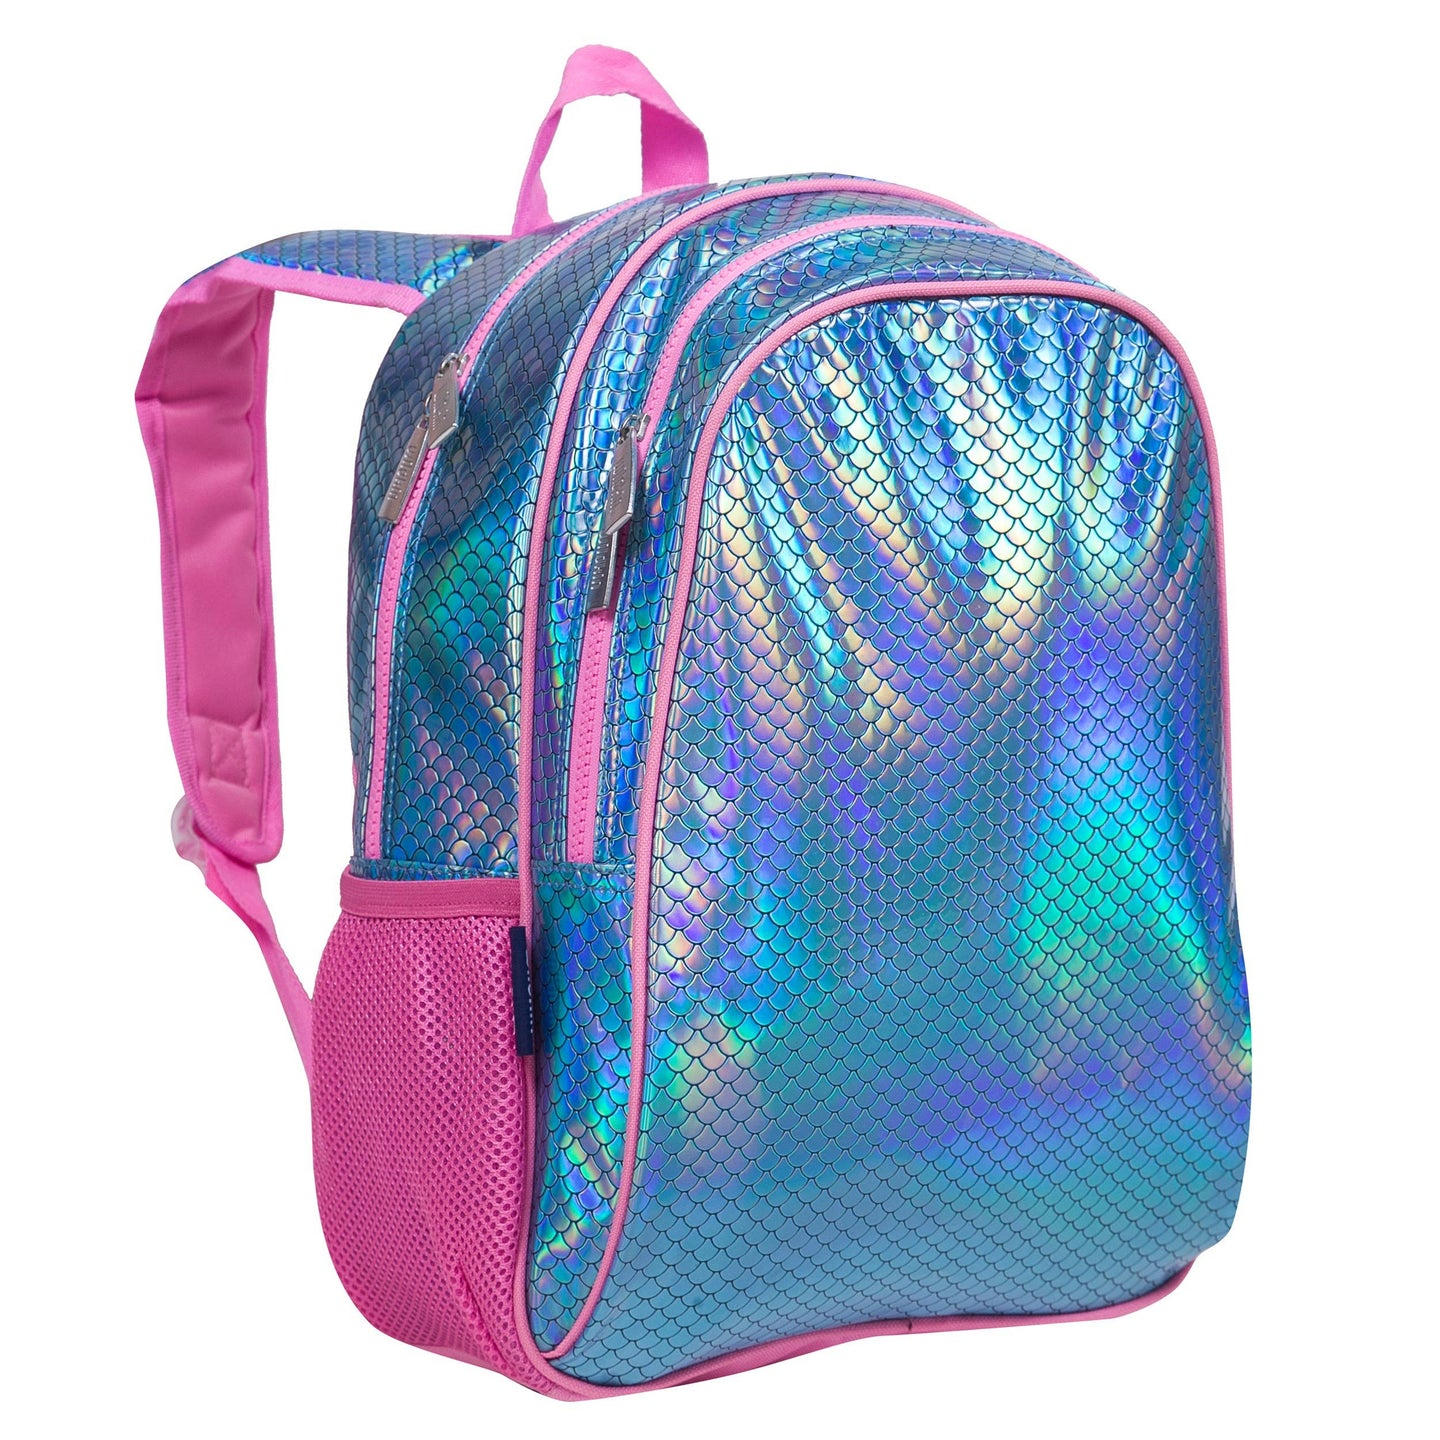 Mermaid Scales Backpack - 15 Inch